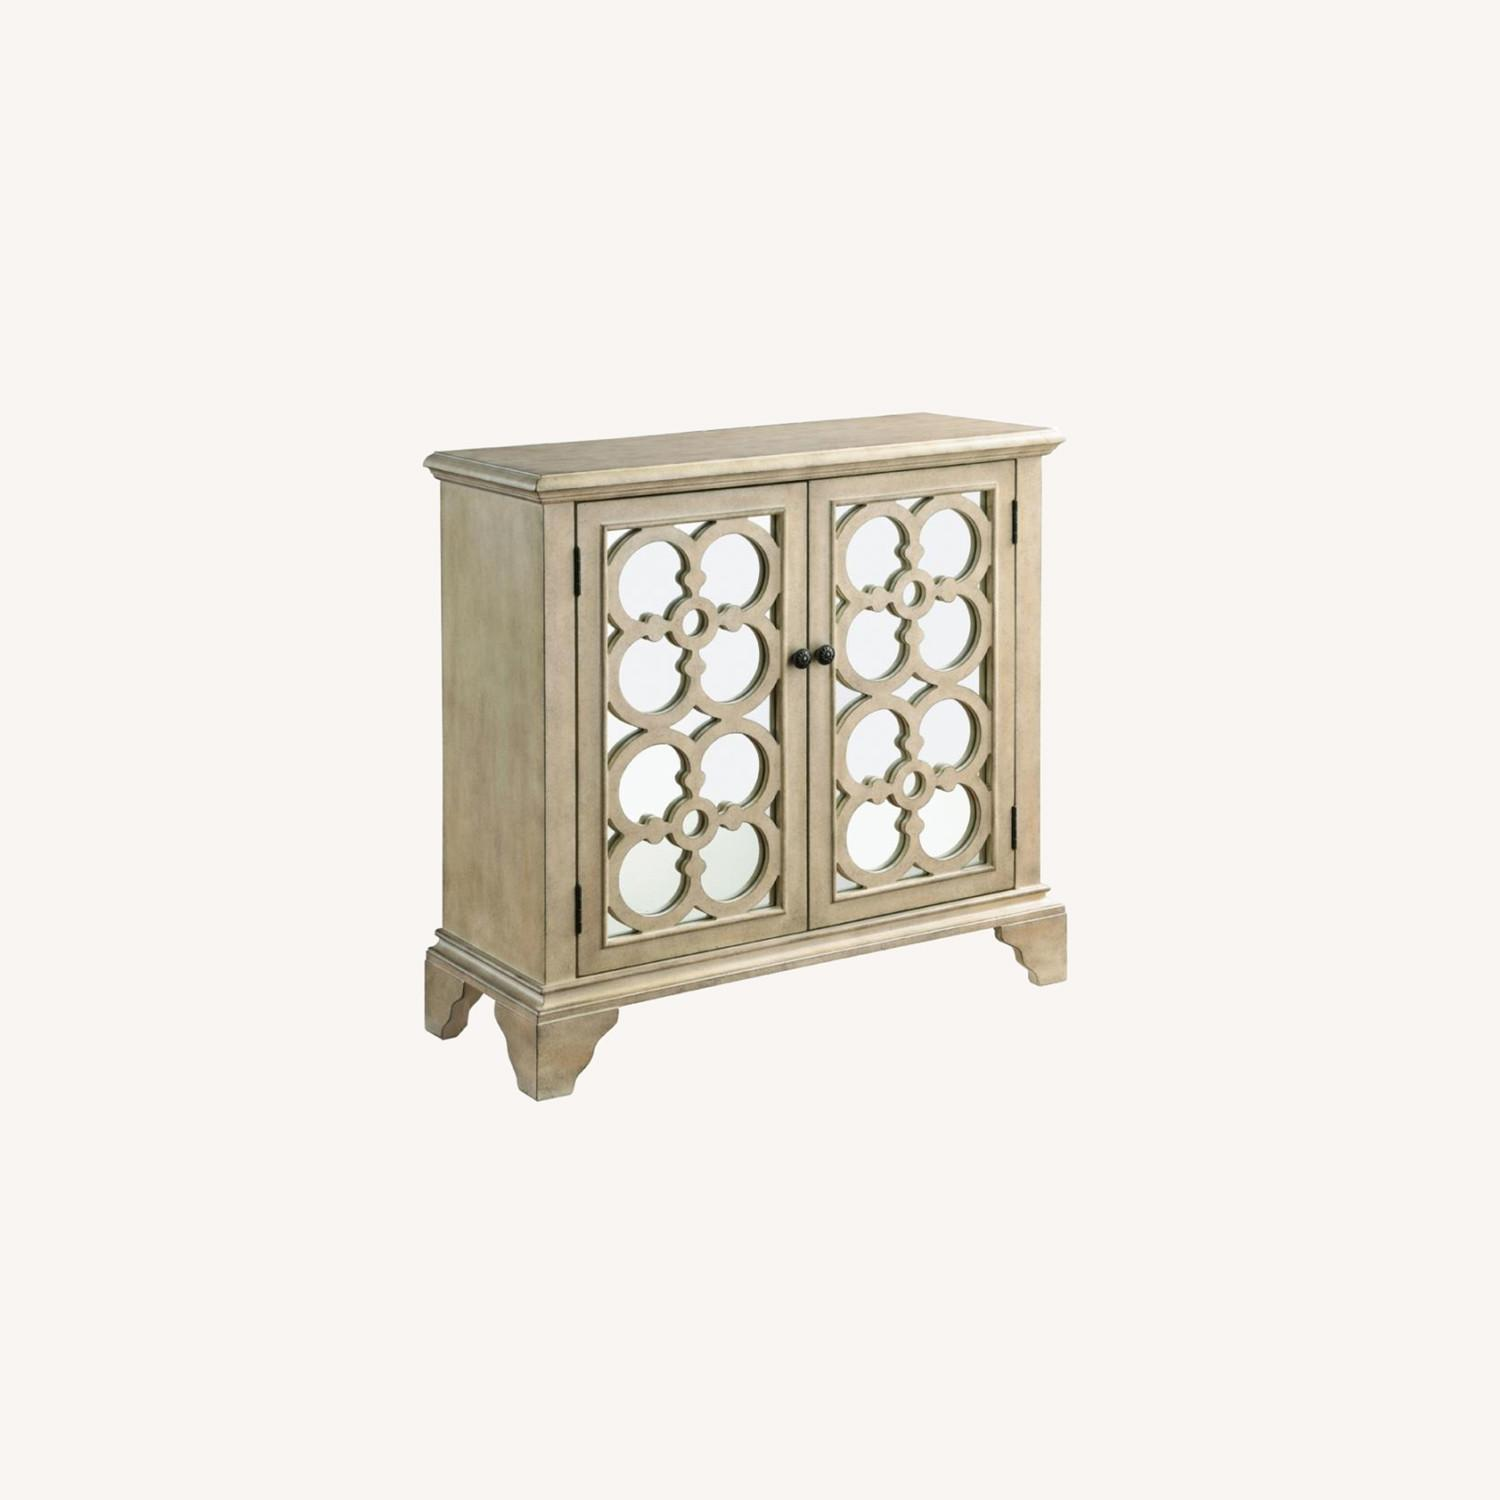 Accent Cabinet In Natural Hardwood Finish - image-3